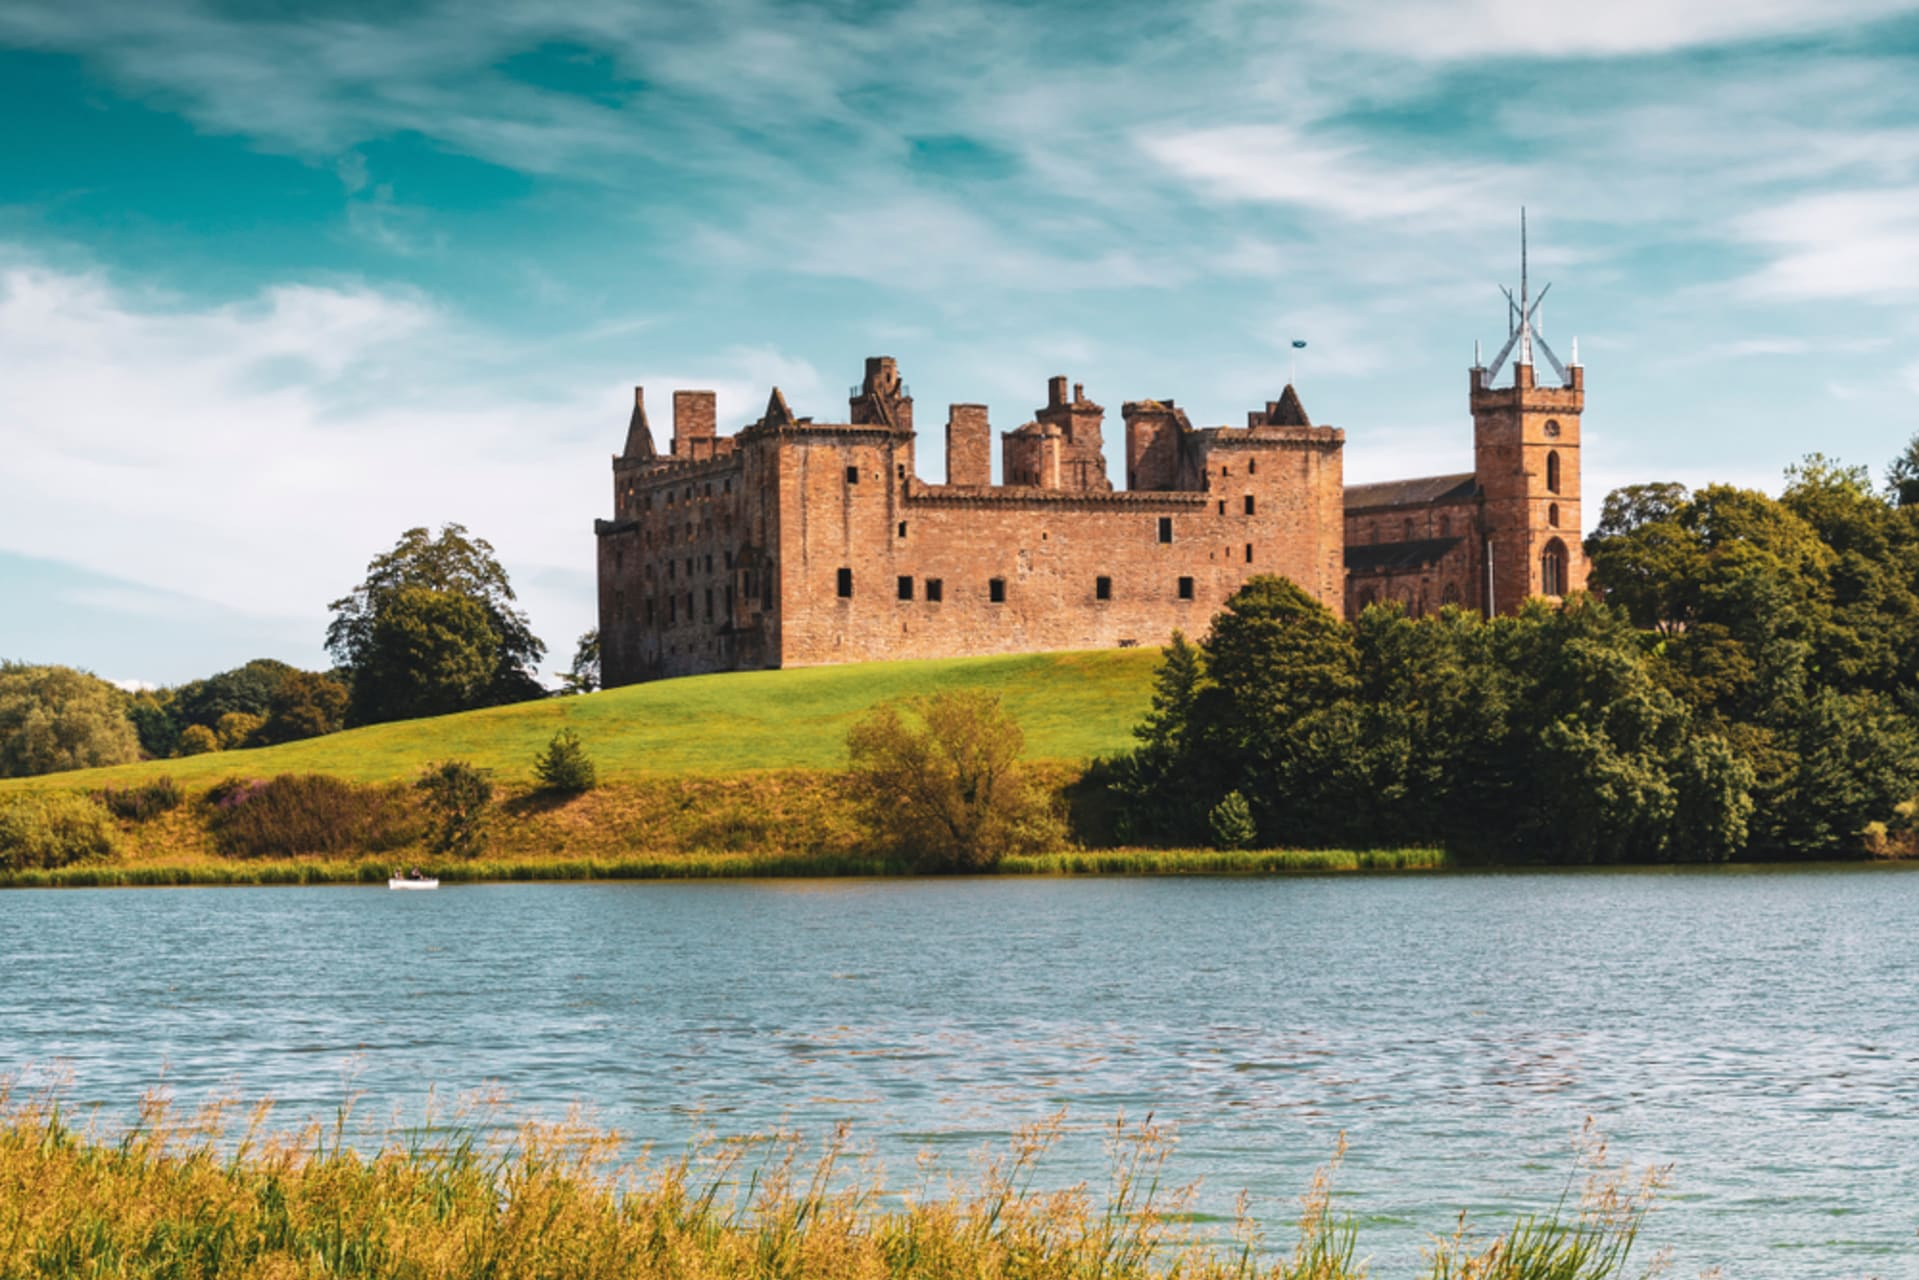 Central Scotland - Linlithgow Palace: The Birthplace of Mary Queen of Scots